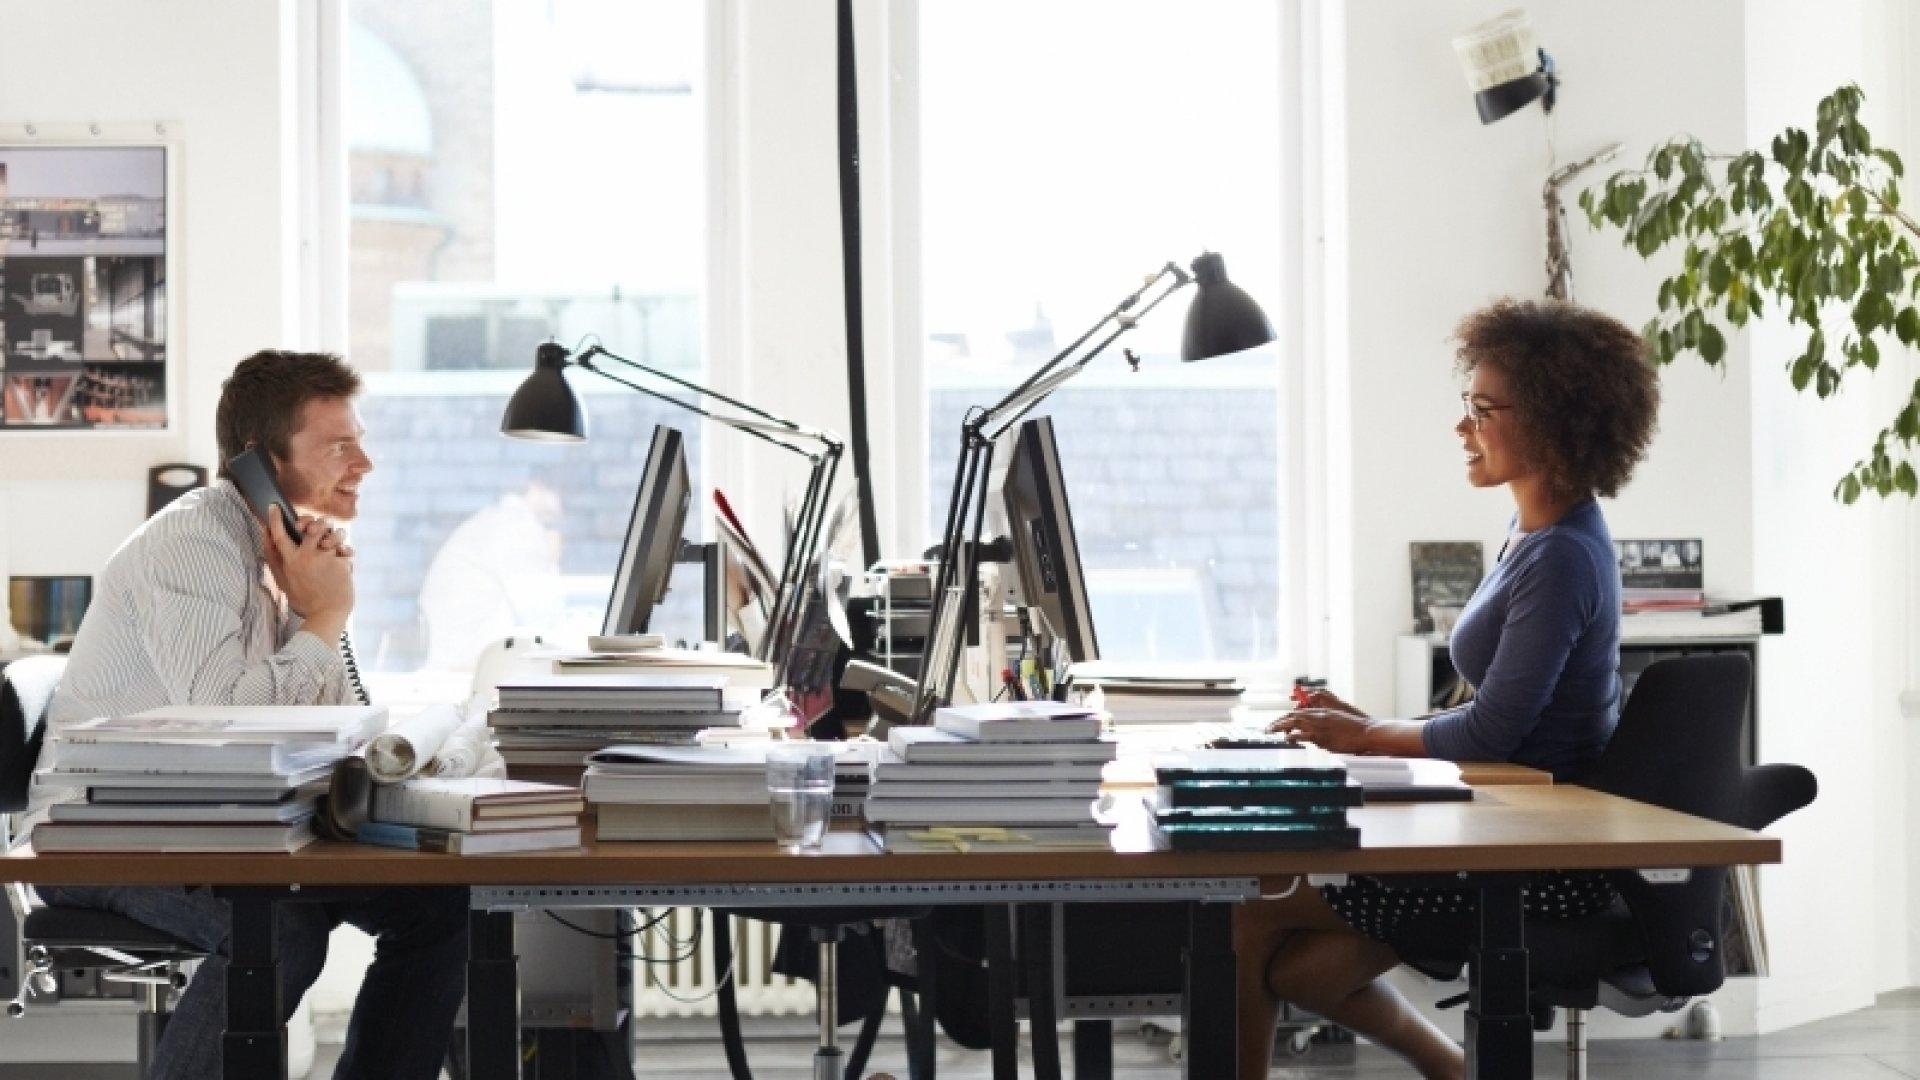 How to Have a Better Working Environment (Infographic)